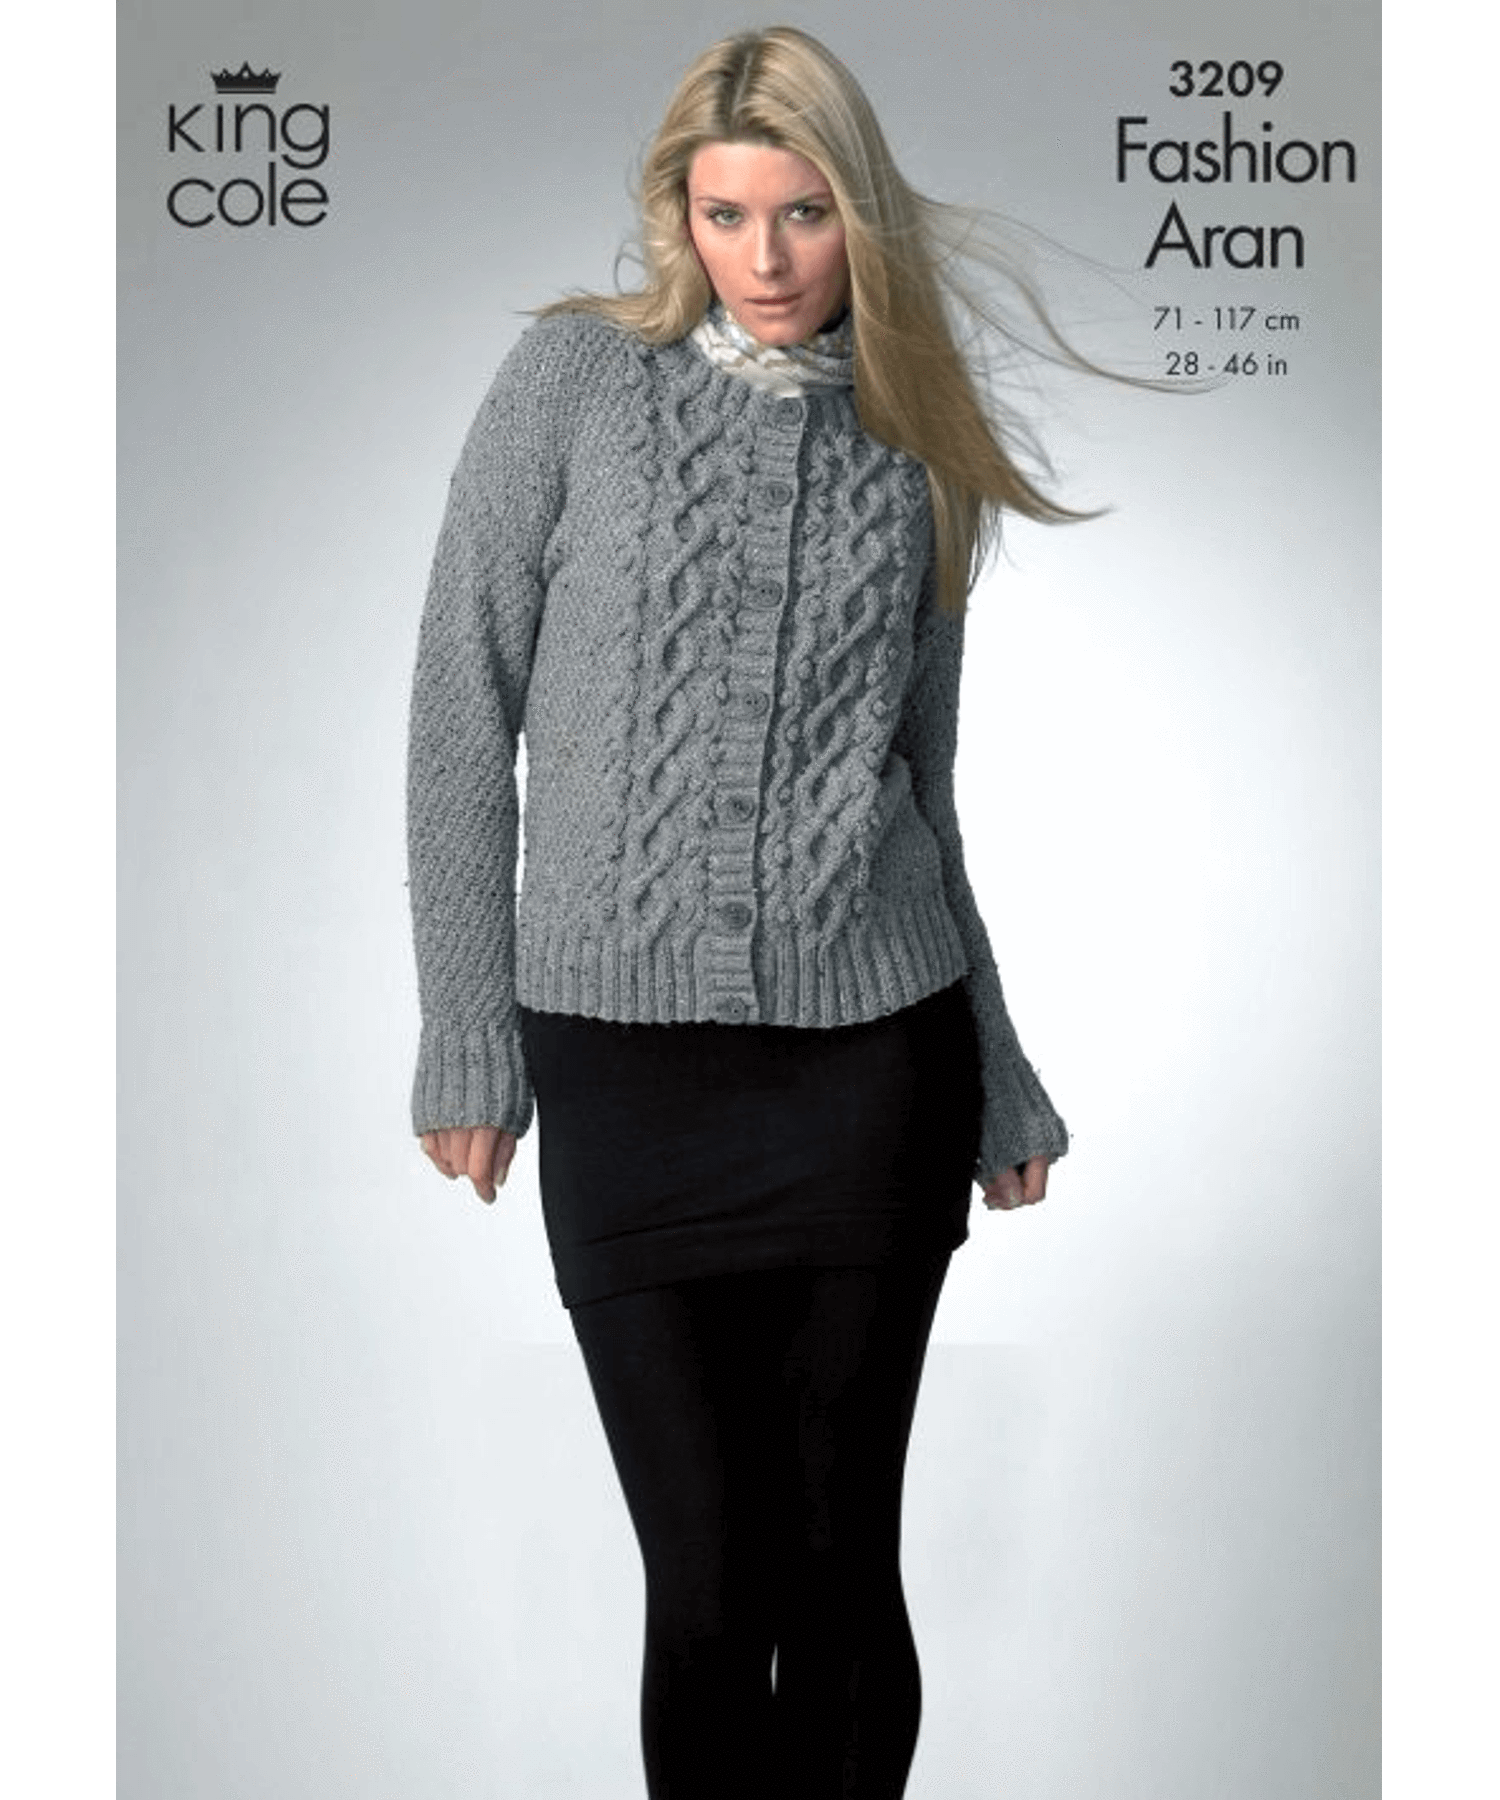 King Cole Aran Pattern 3209 - [Springwools] - Knitting - Irish Gifts